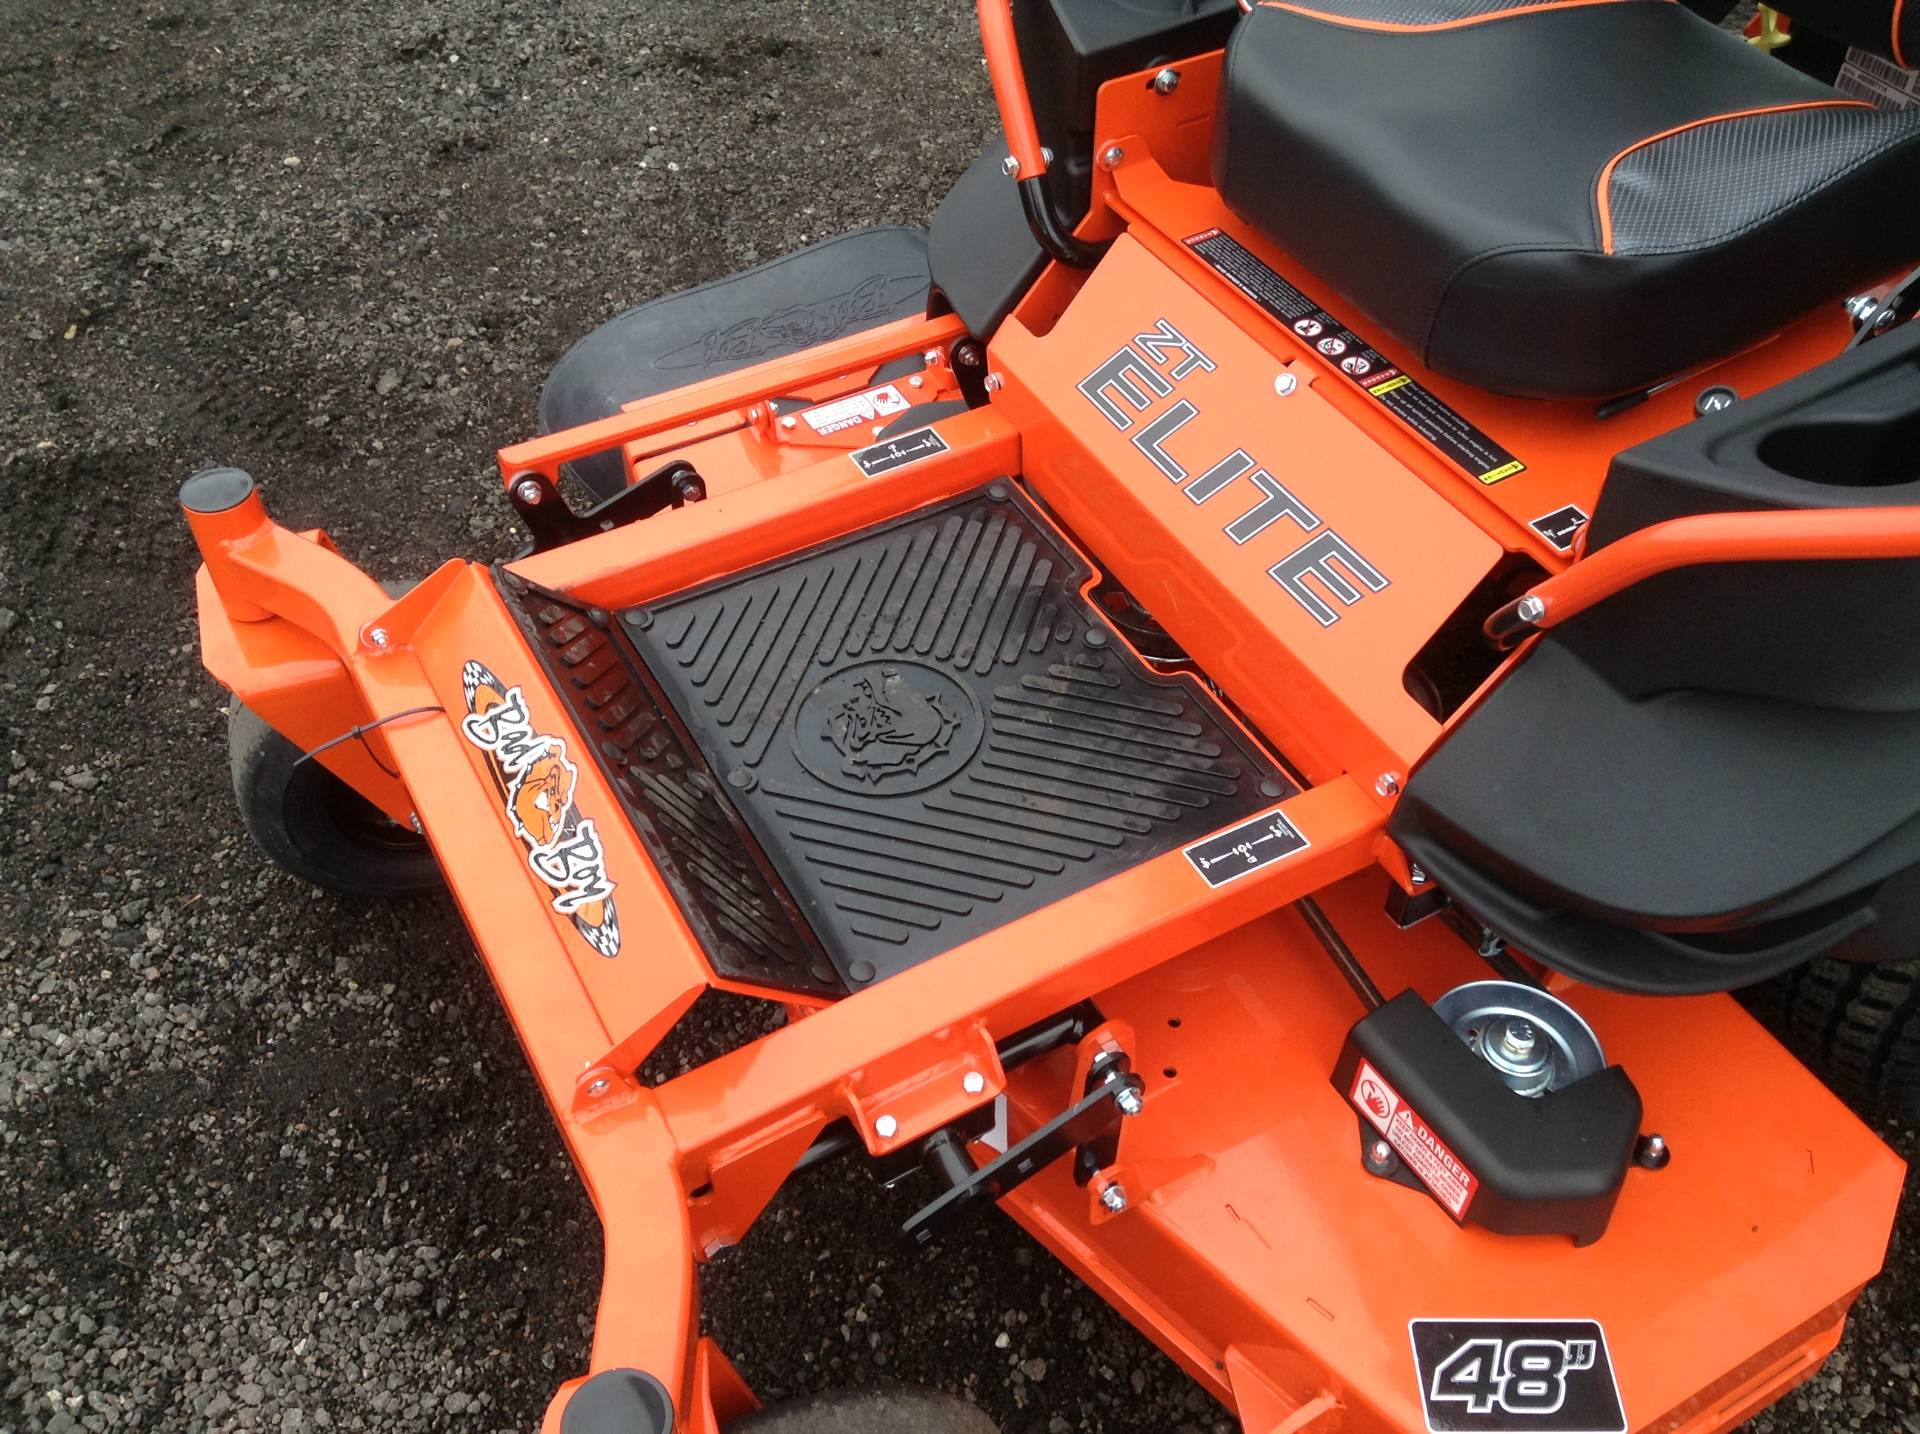 2018 Bad Boy Mowers ZT ELITE 48 in Hutchinson, Minnesota - Photo 12